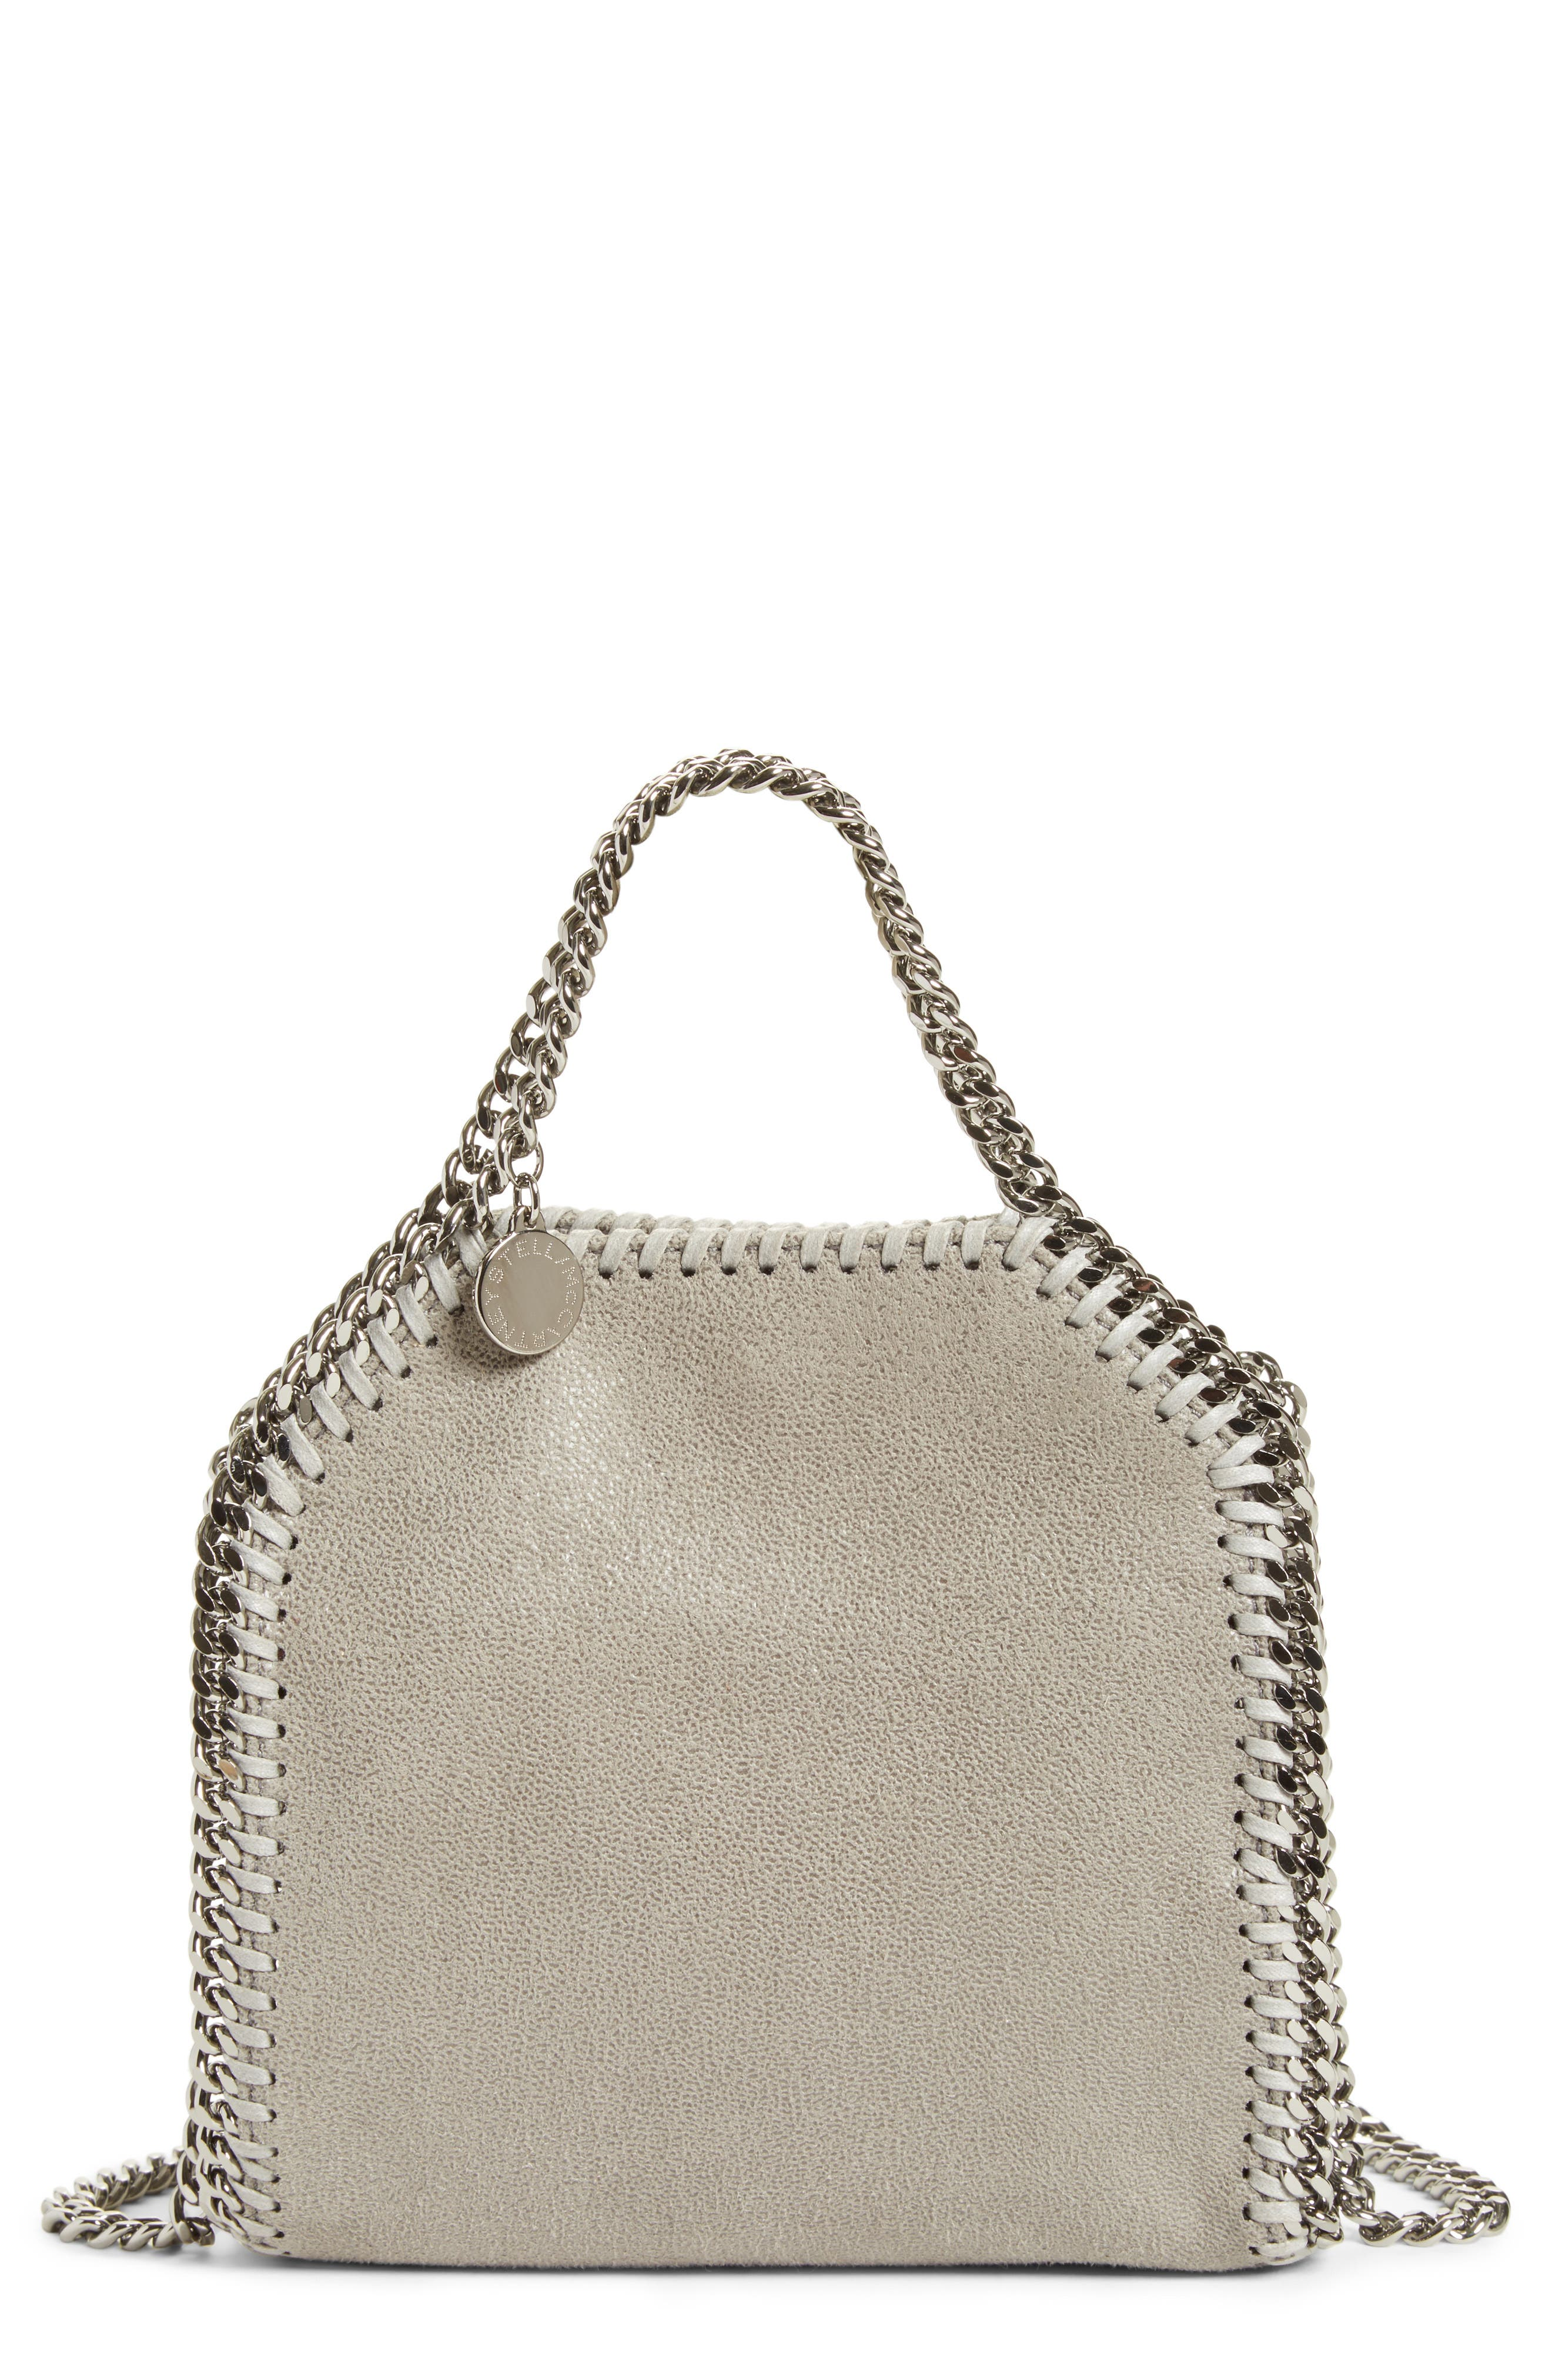 'Tiny Falabella' Faux Leather Crossbody Bag,                         Main,                         color, Light Grey